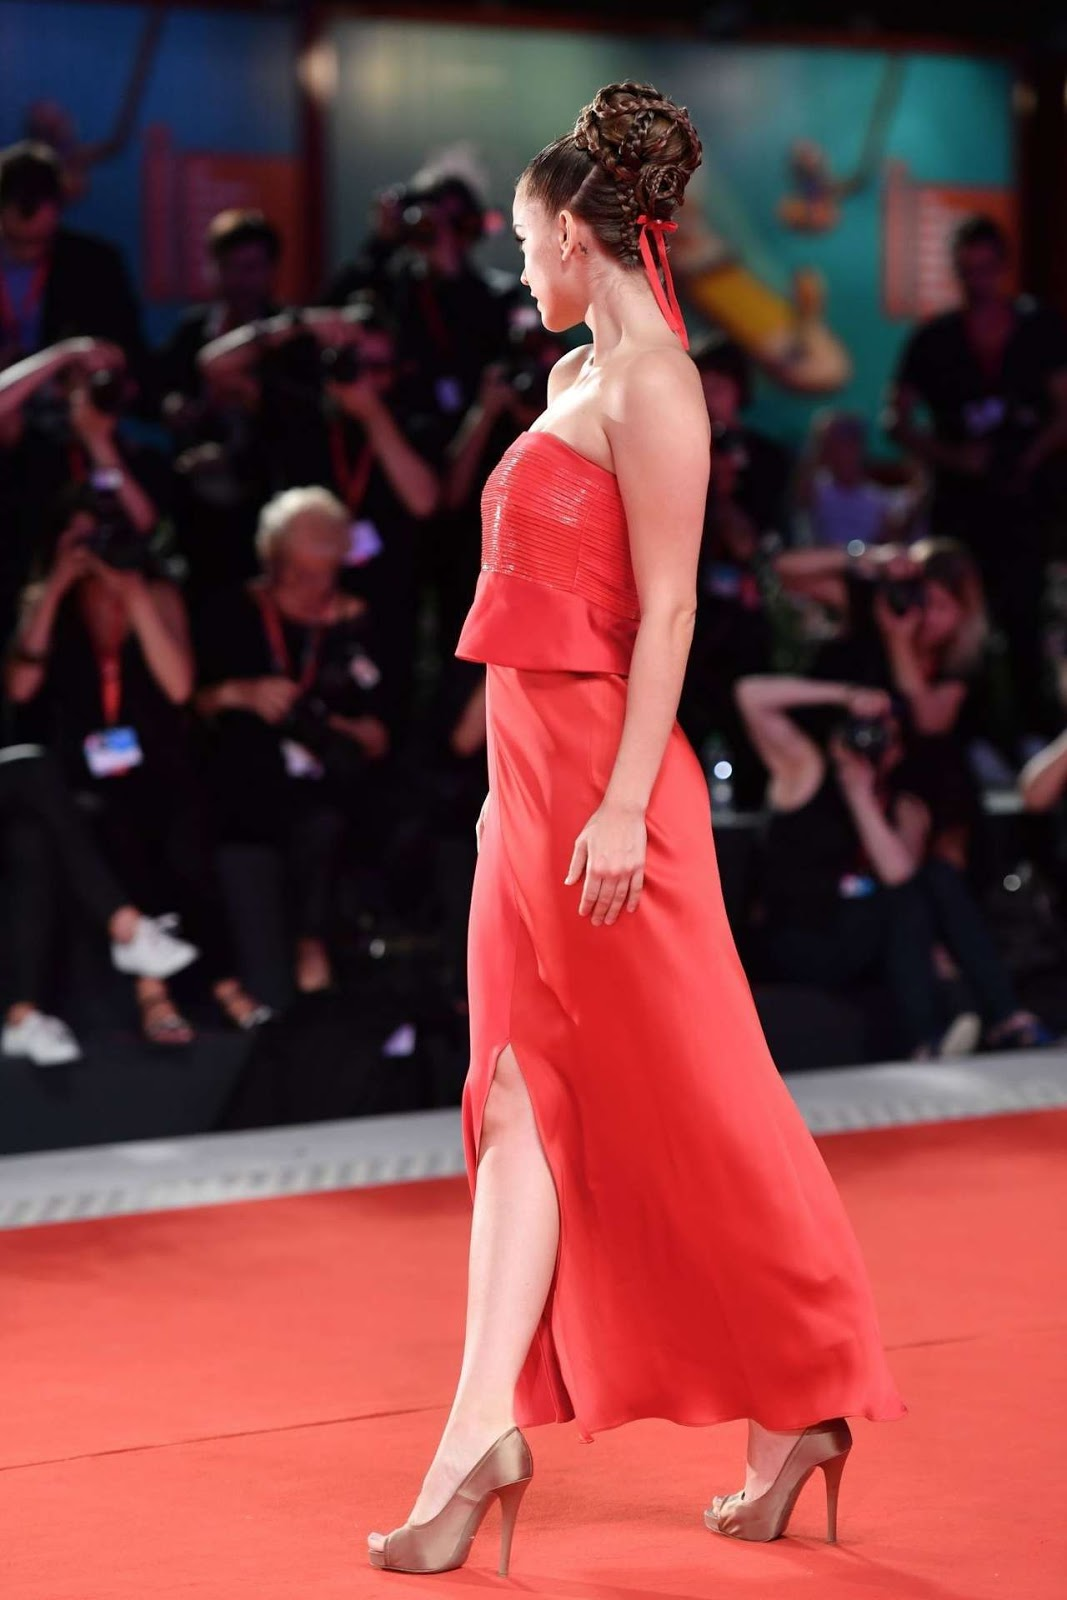 Barbara Palvin at the Screening of Seberg at 76th Venice Film Festival